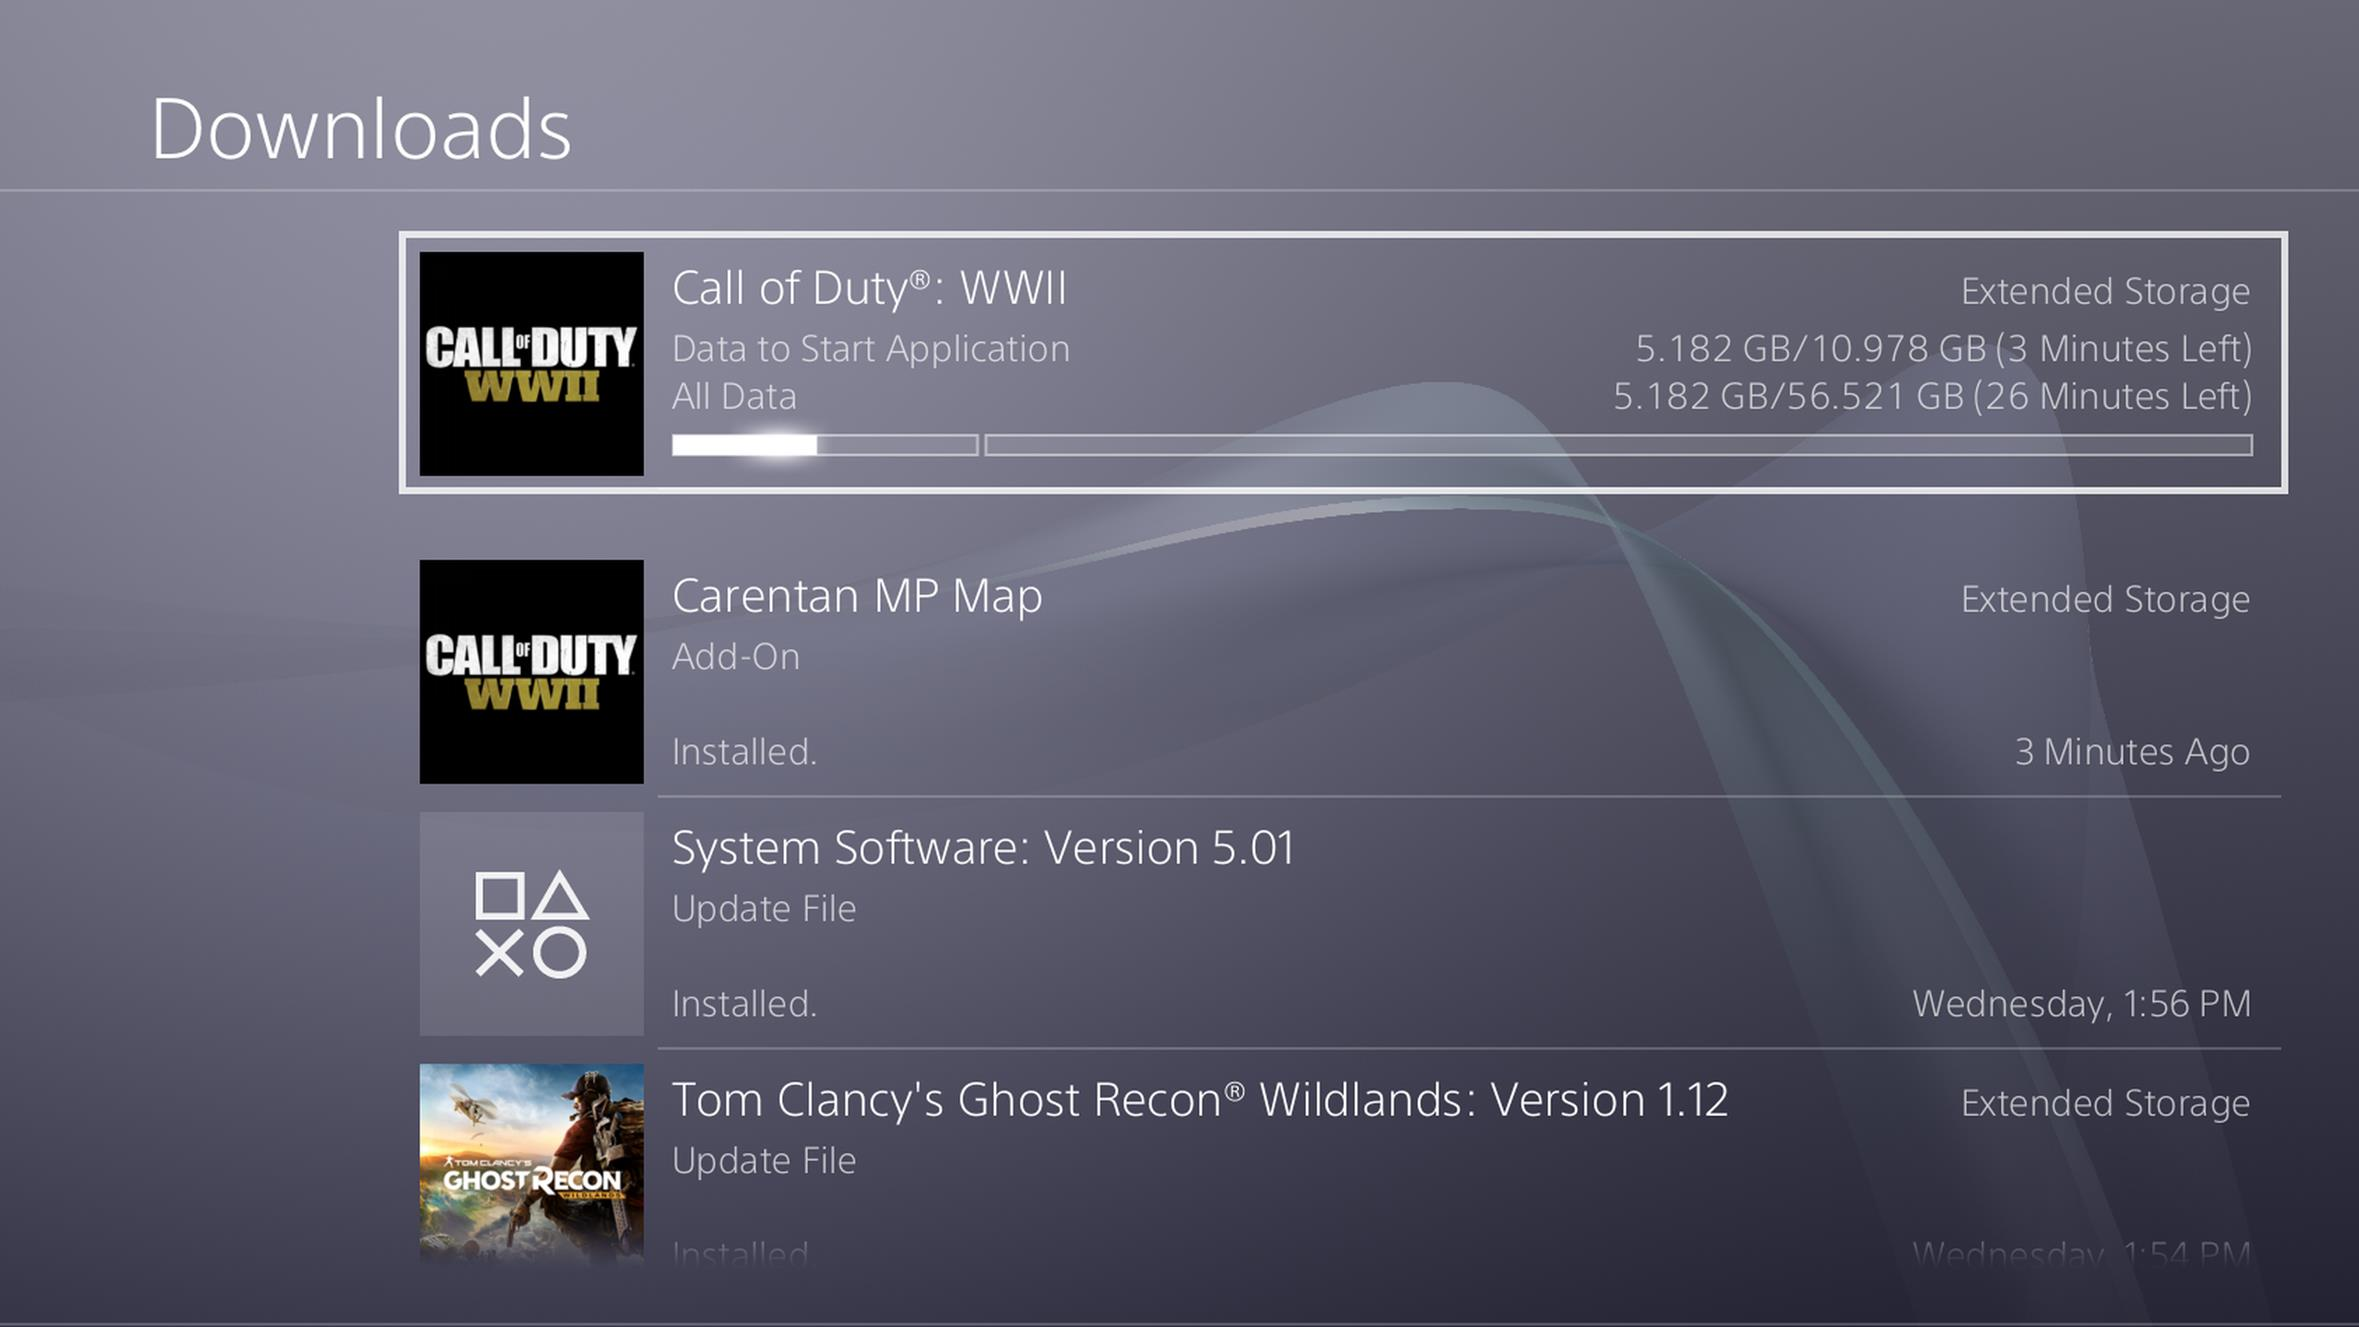 Call of Duty: WWII is now available to pre-download